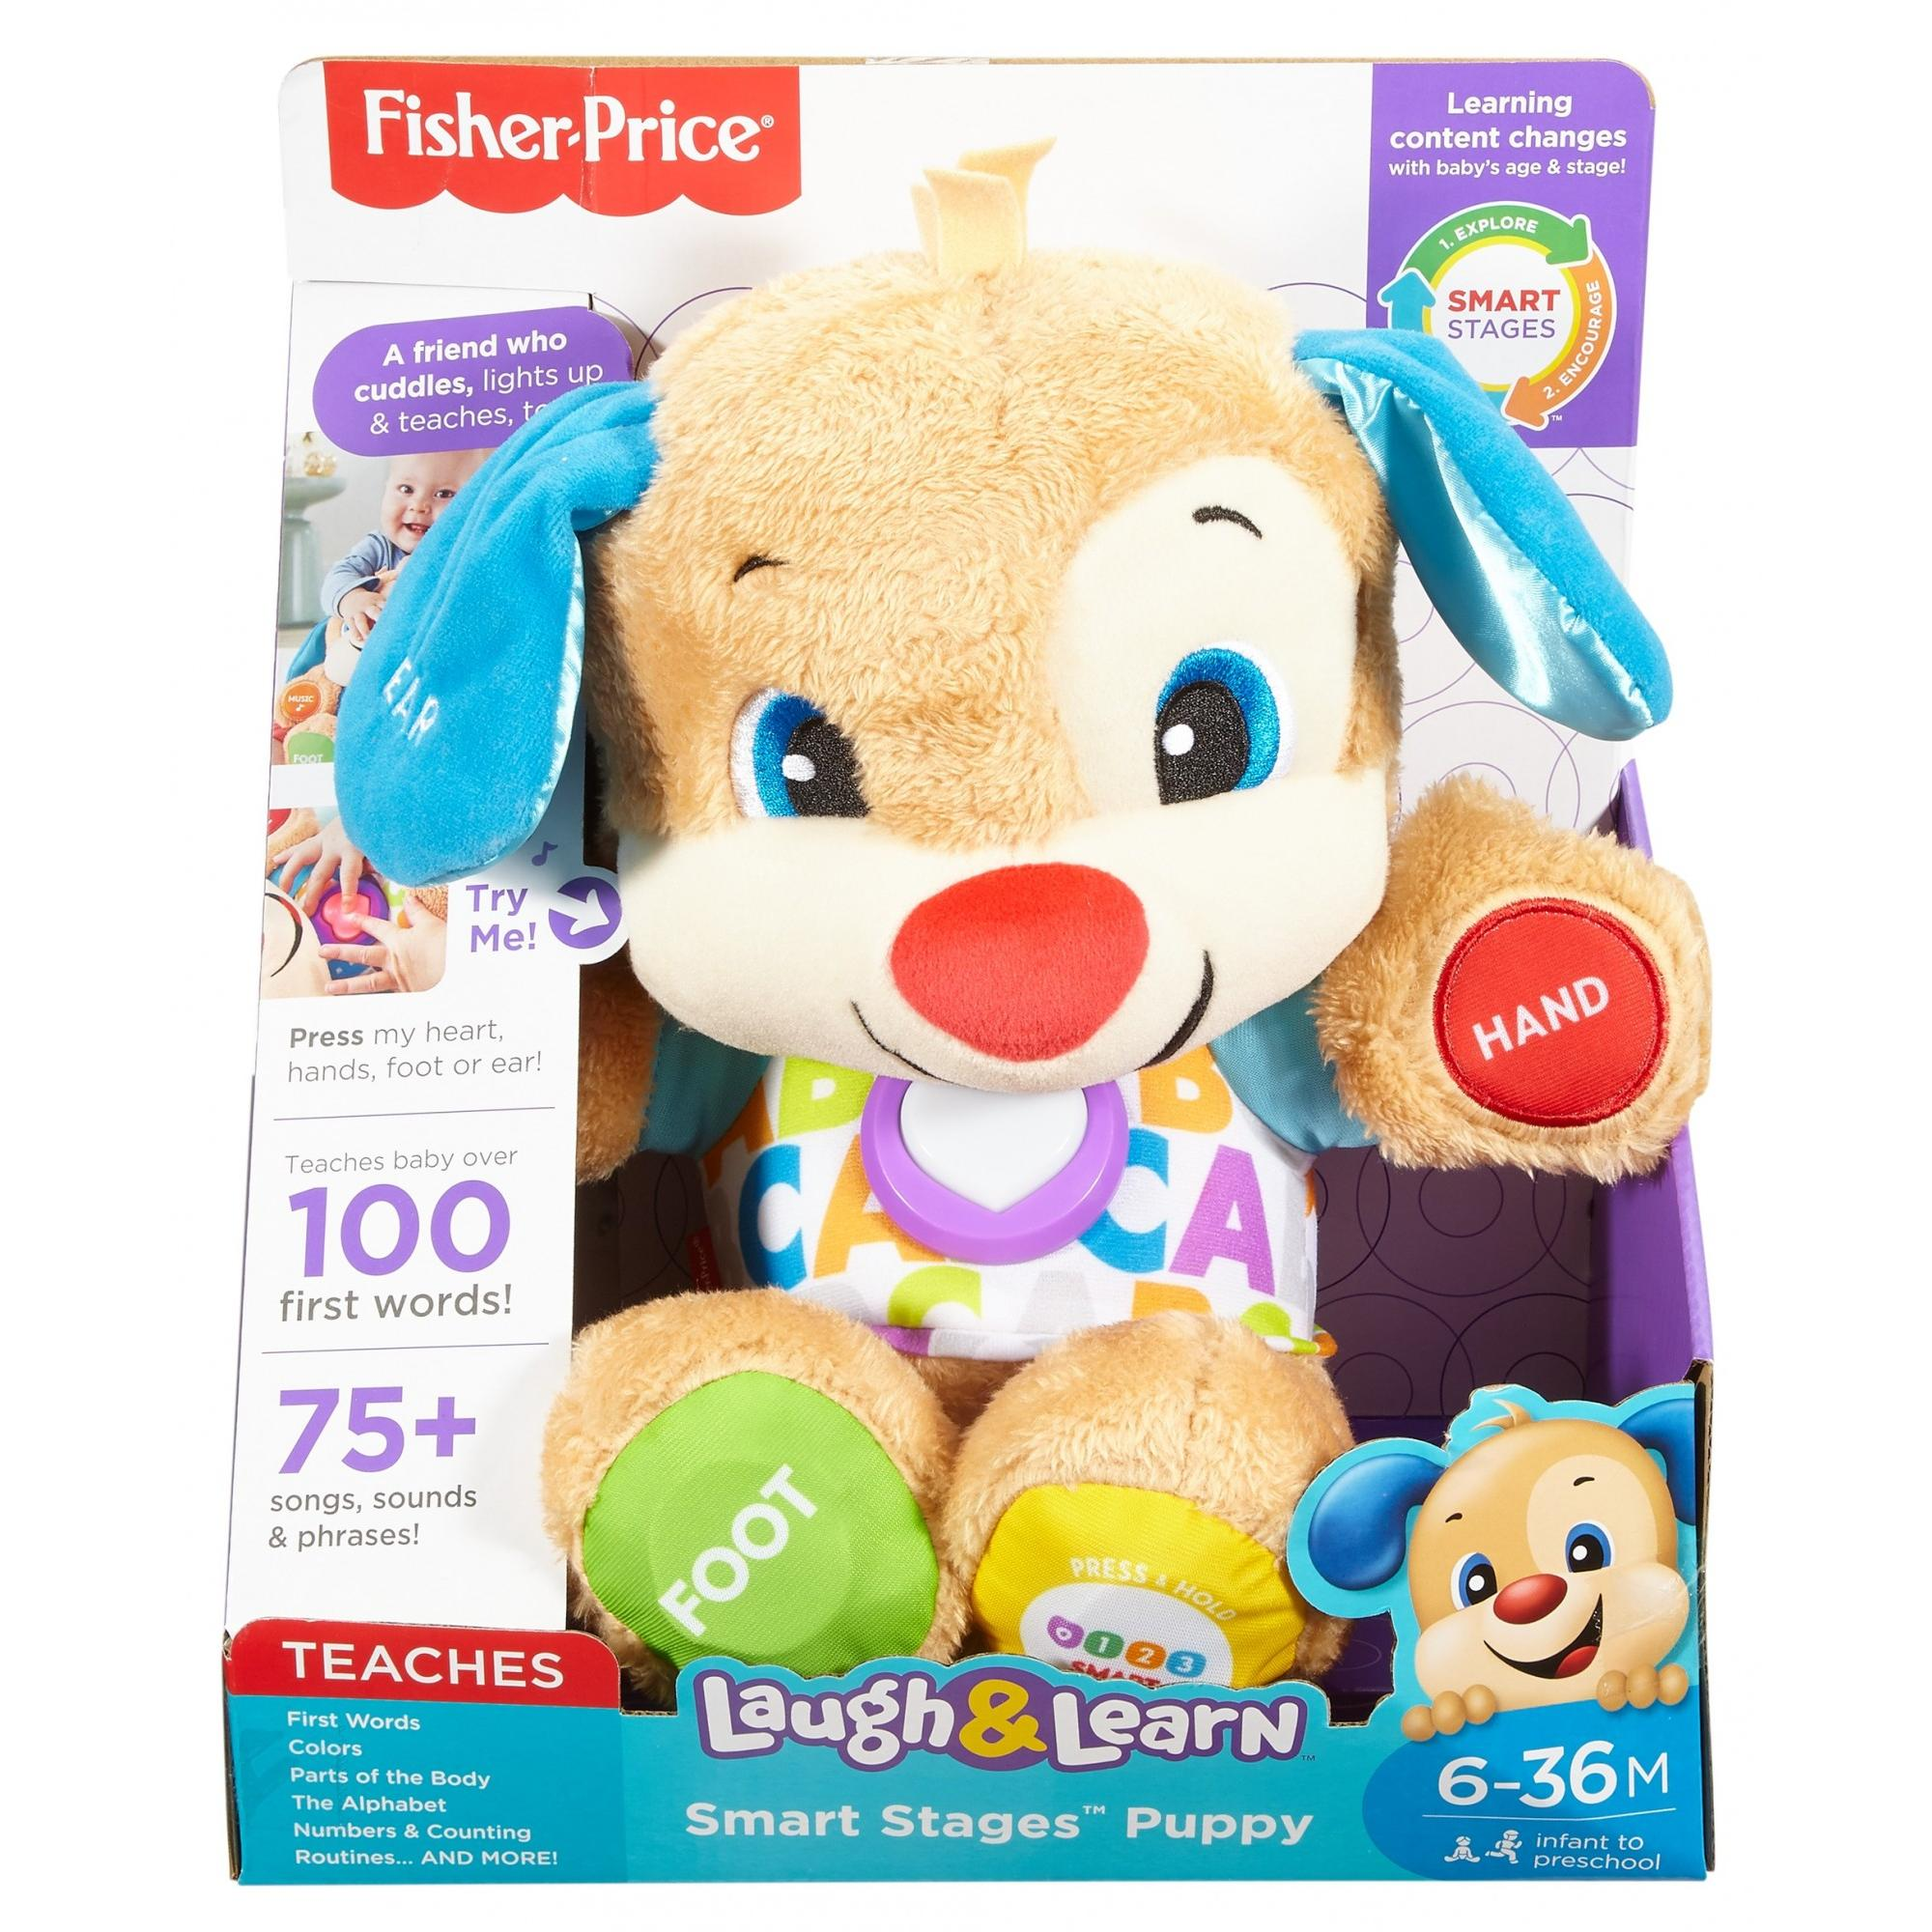 9d01aaf758 Fisher-Price Laugh & Learn Smart Stages Puppy | ToyBoxJa